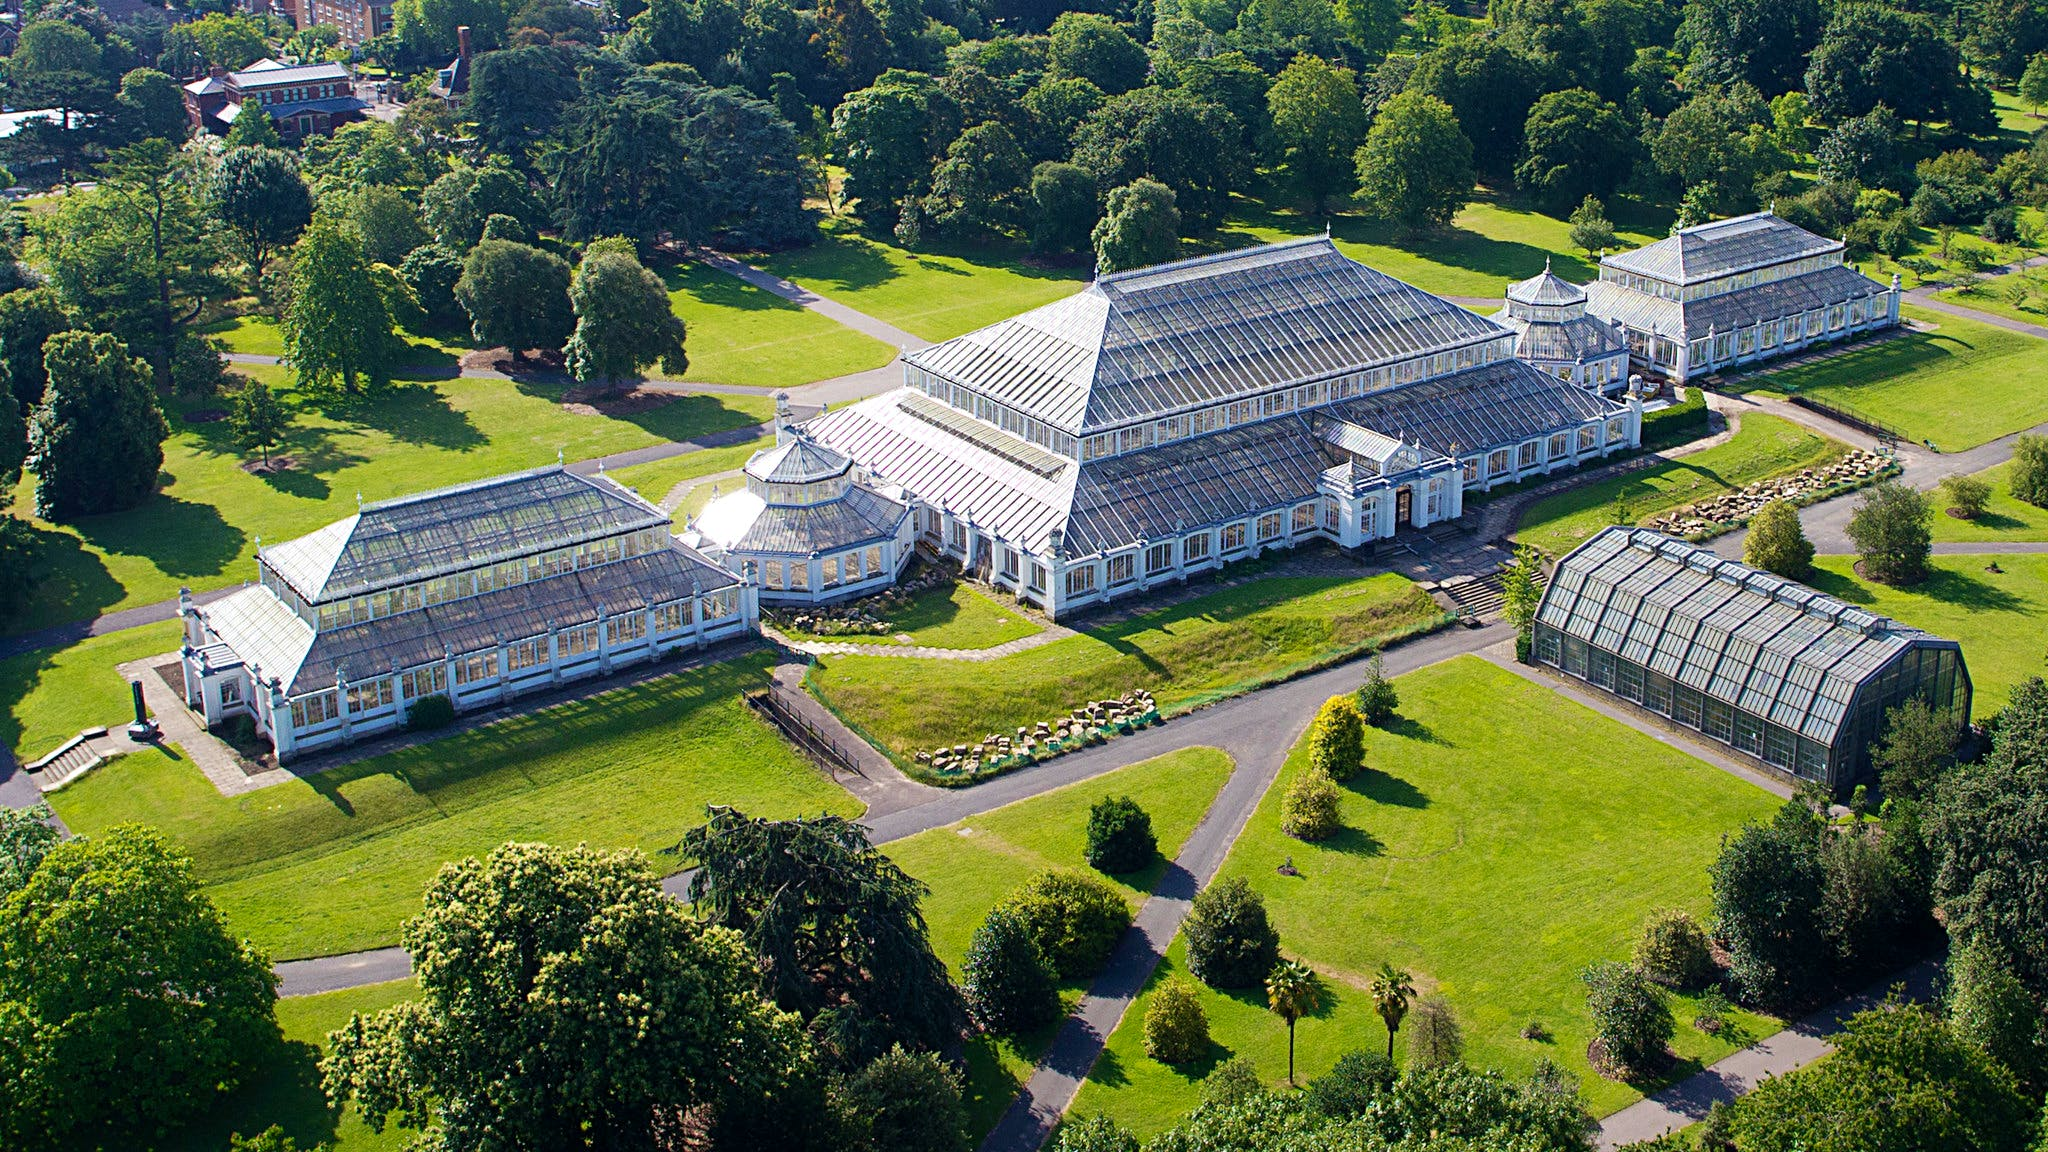 The Temperate House at Kew Gardens, designed by Decimus Burton and Richard Turner and built between 1859 and 1898, © The Board of Trustees of the Royal Botanic Gardens, Kew